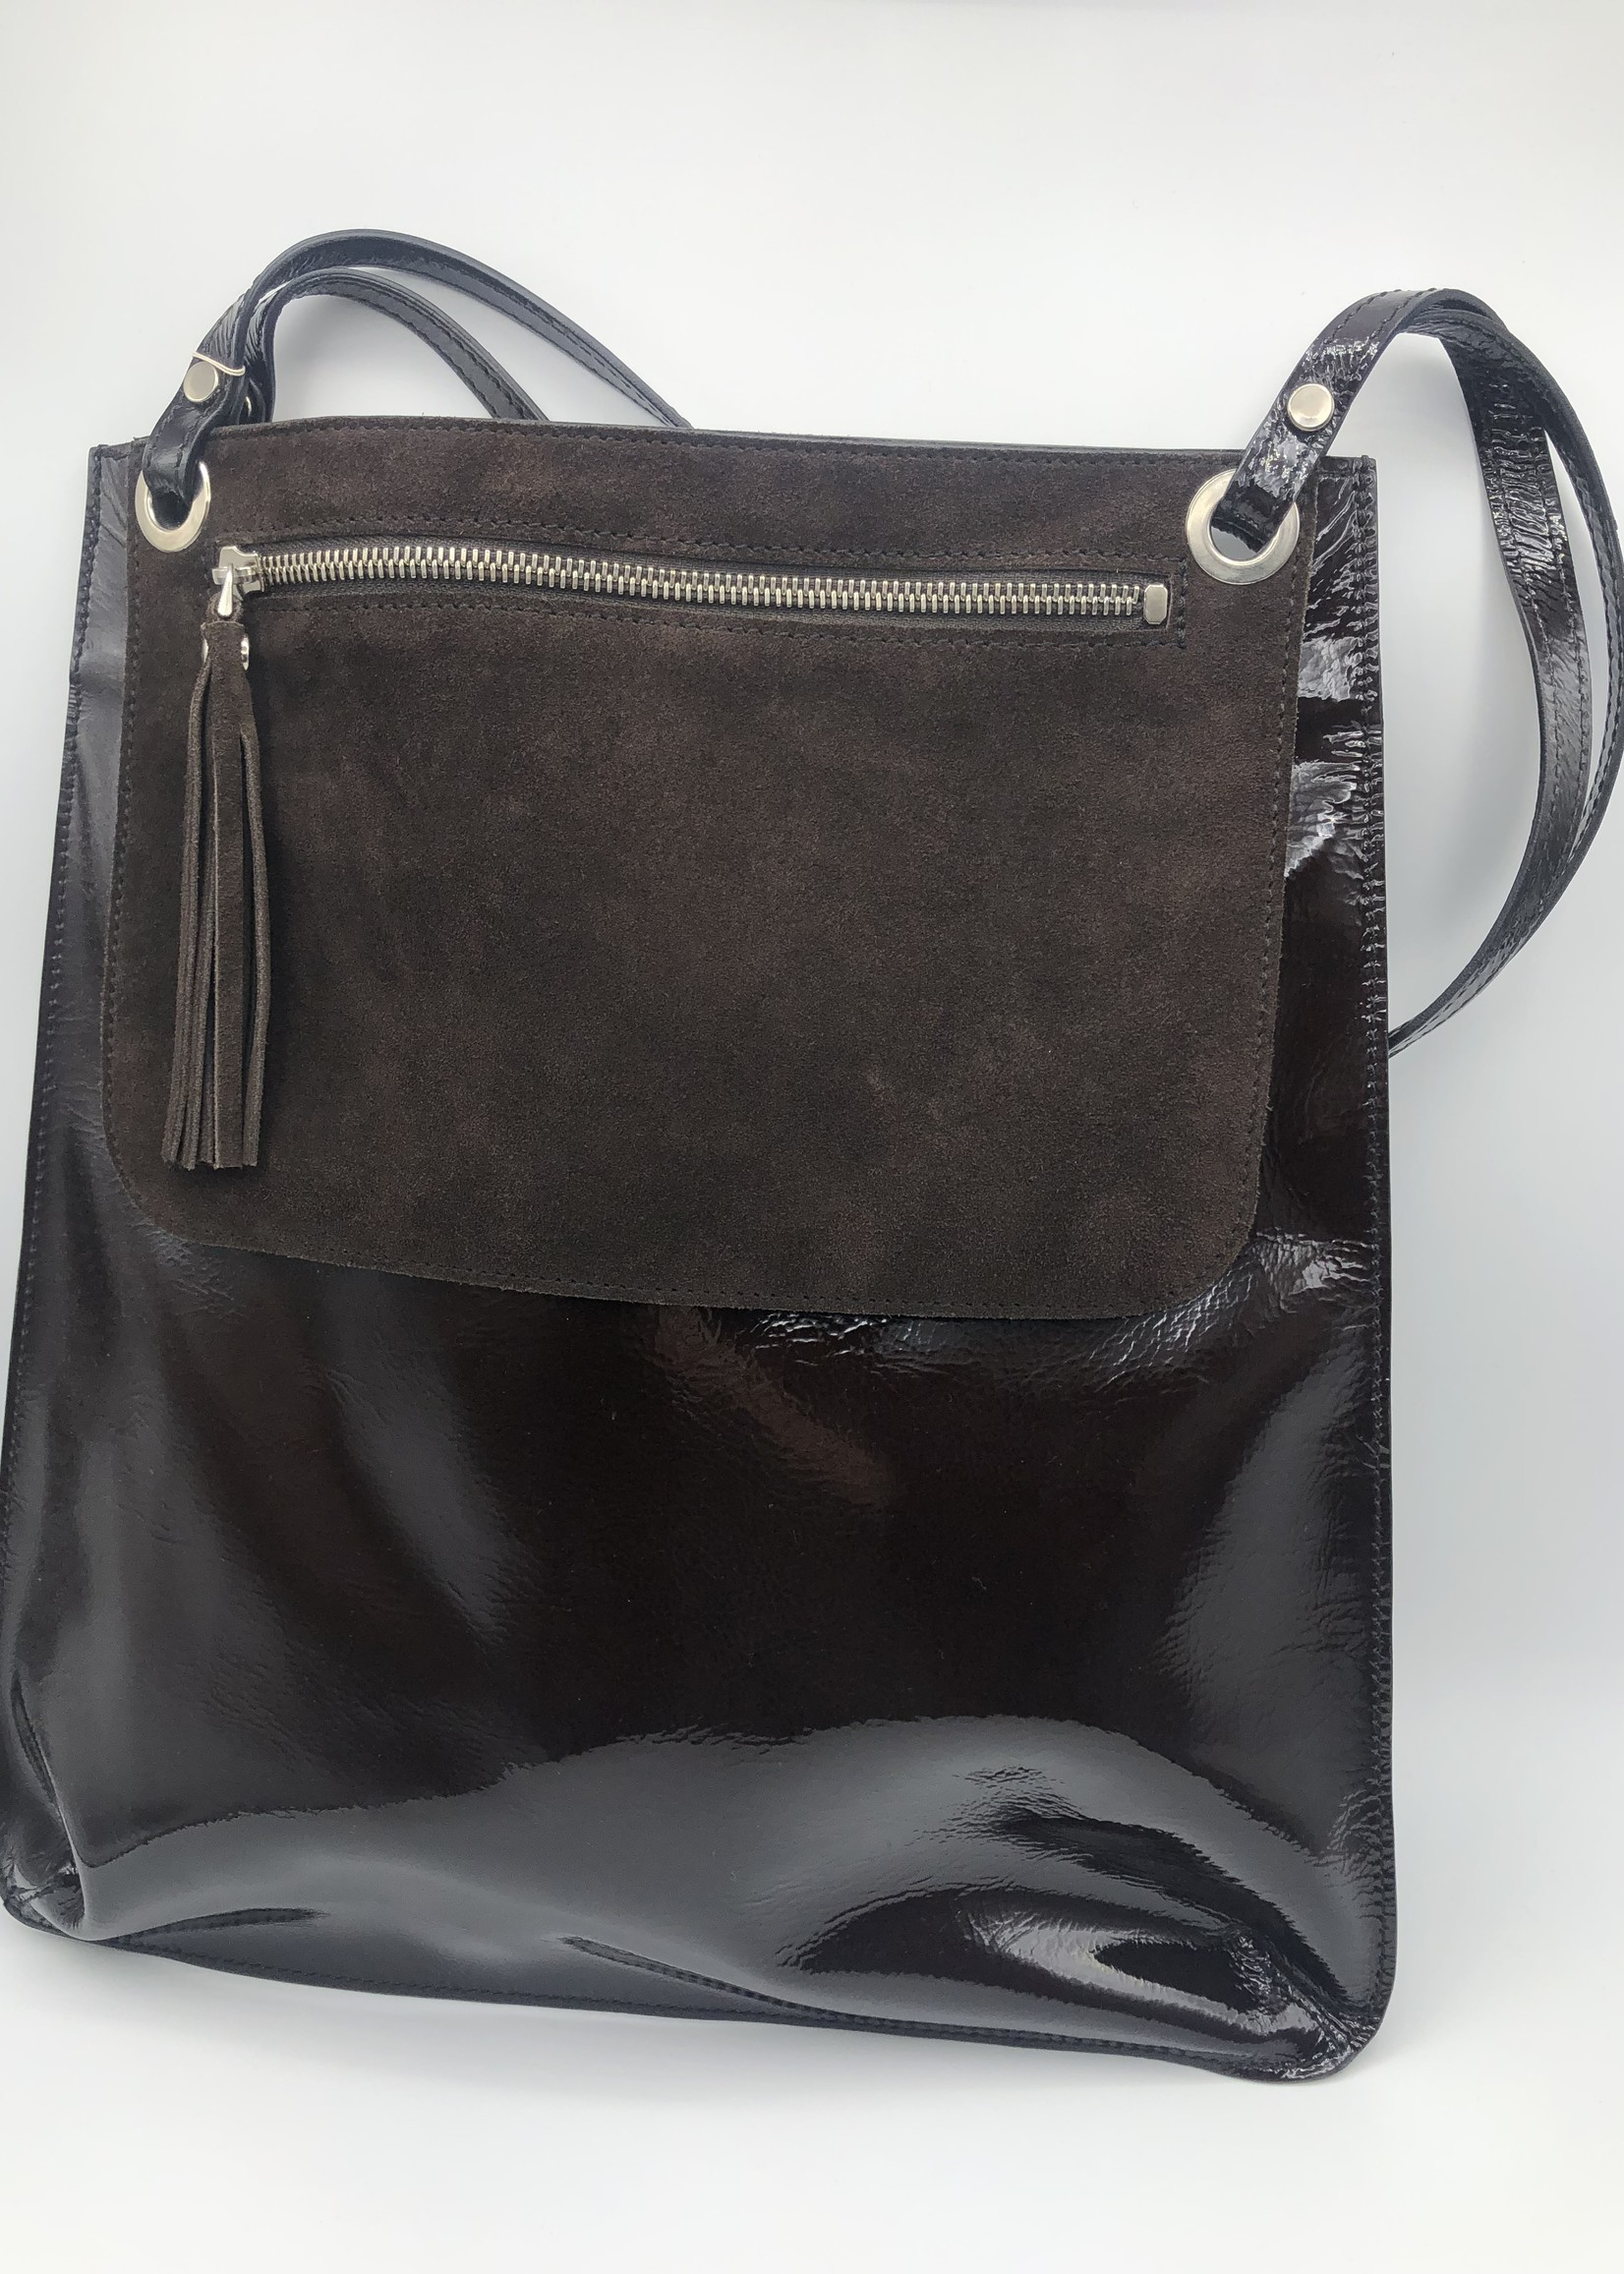 BogaBag Brown Patent Tote Bag with Pouch